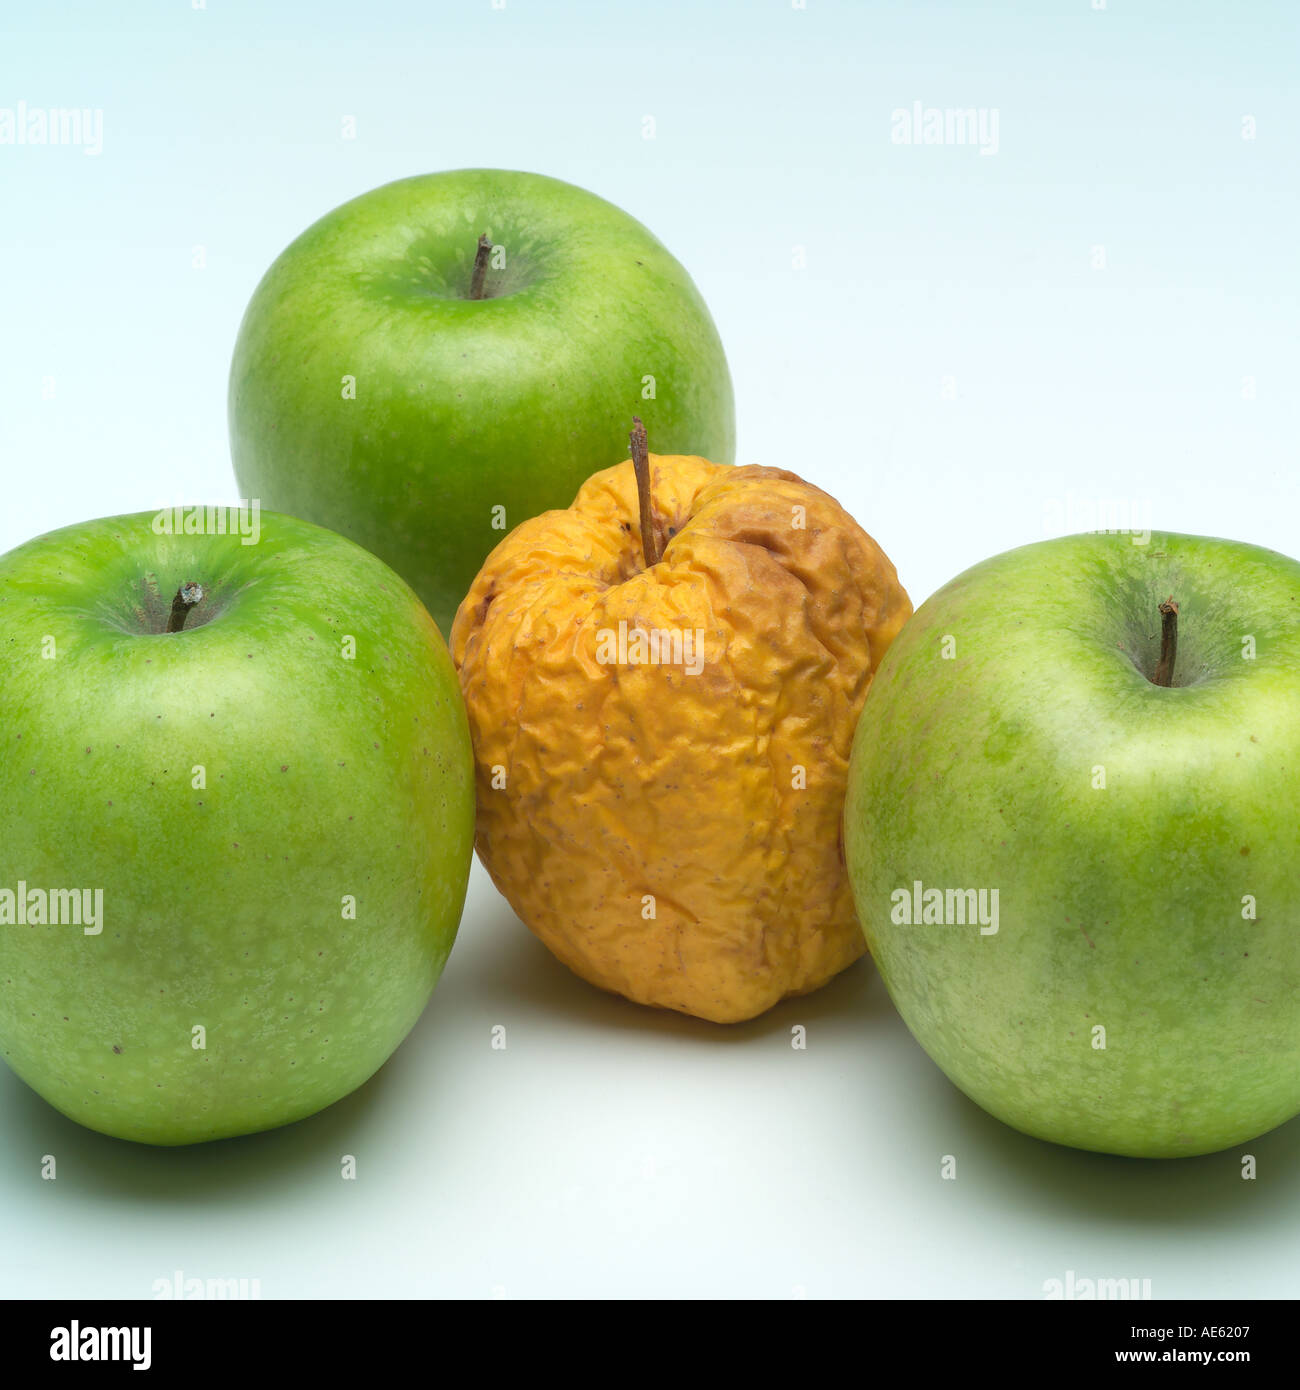 Three fresh Granny Smith and one wrinkled Golden Delicious apples - Stock Image